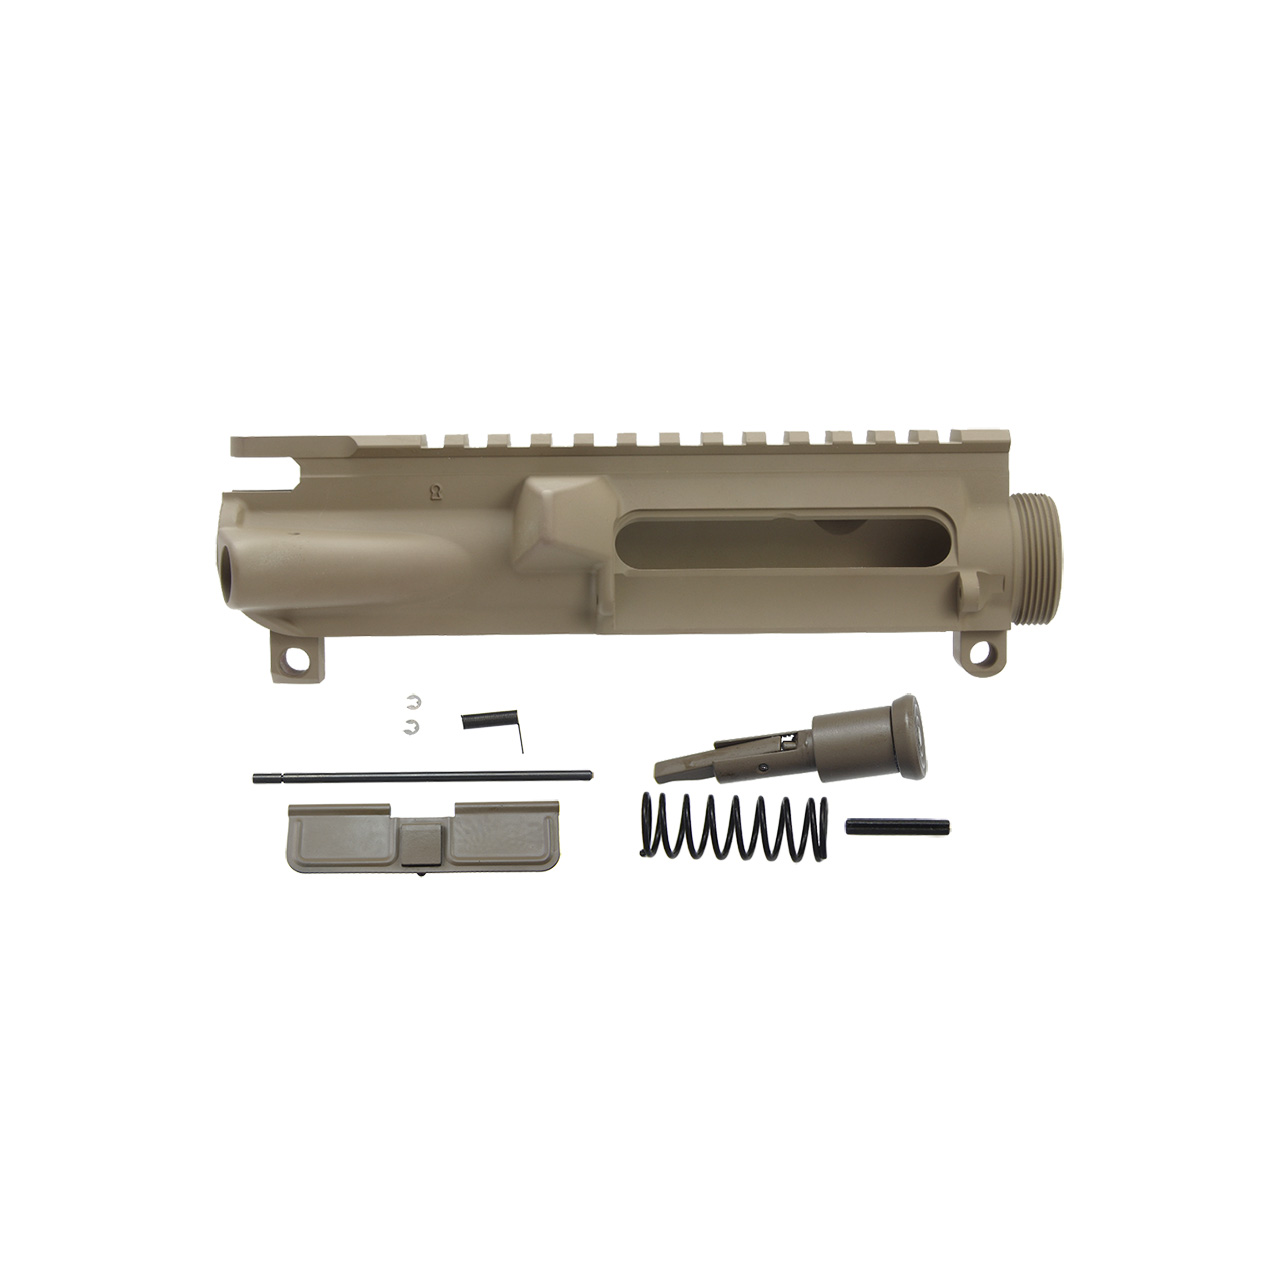 AR15 complete upper receiver w/ forward assist and dust cover, FDE cerakote